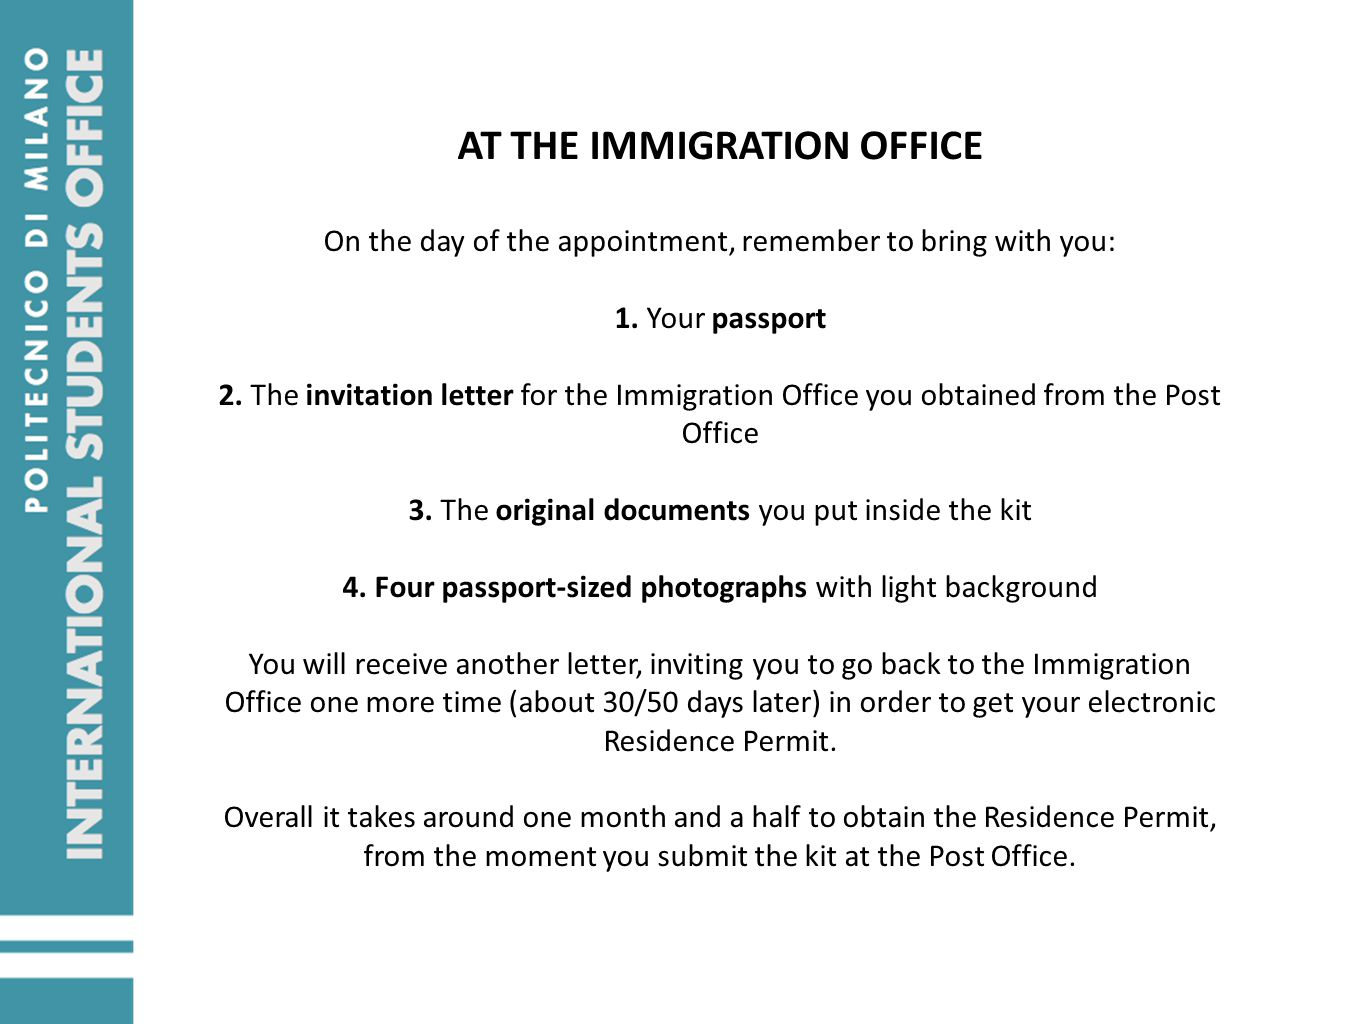 AT THE IMMIGRATION OFFICE On the day of the appointment, remember to bring with you: 1. Your passport 2. The invitation letter for the Immigration Off